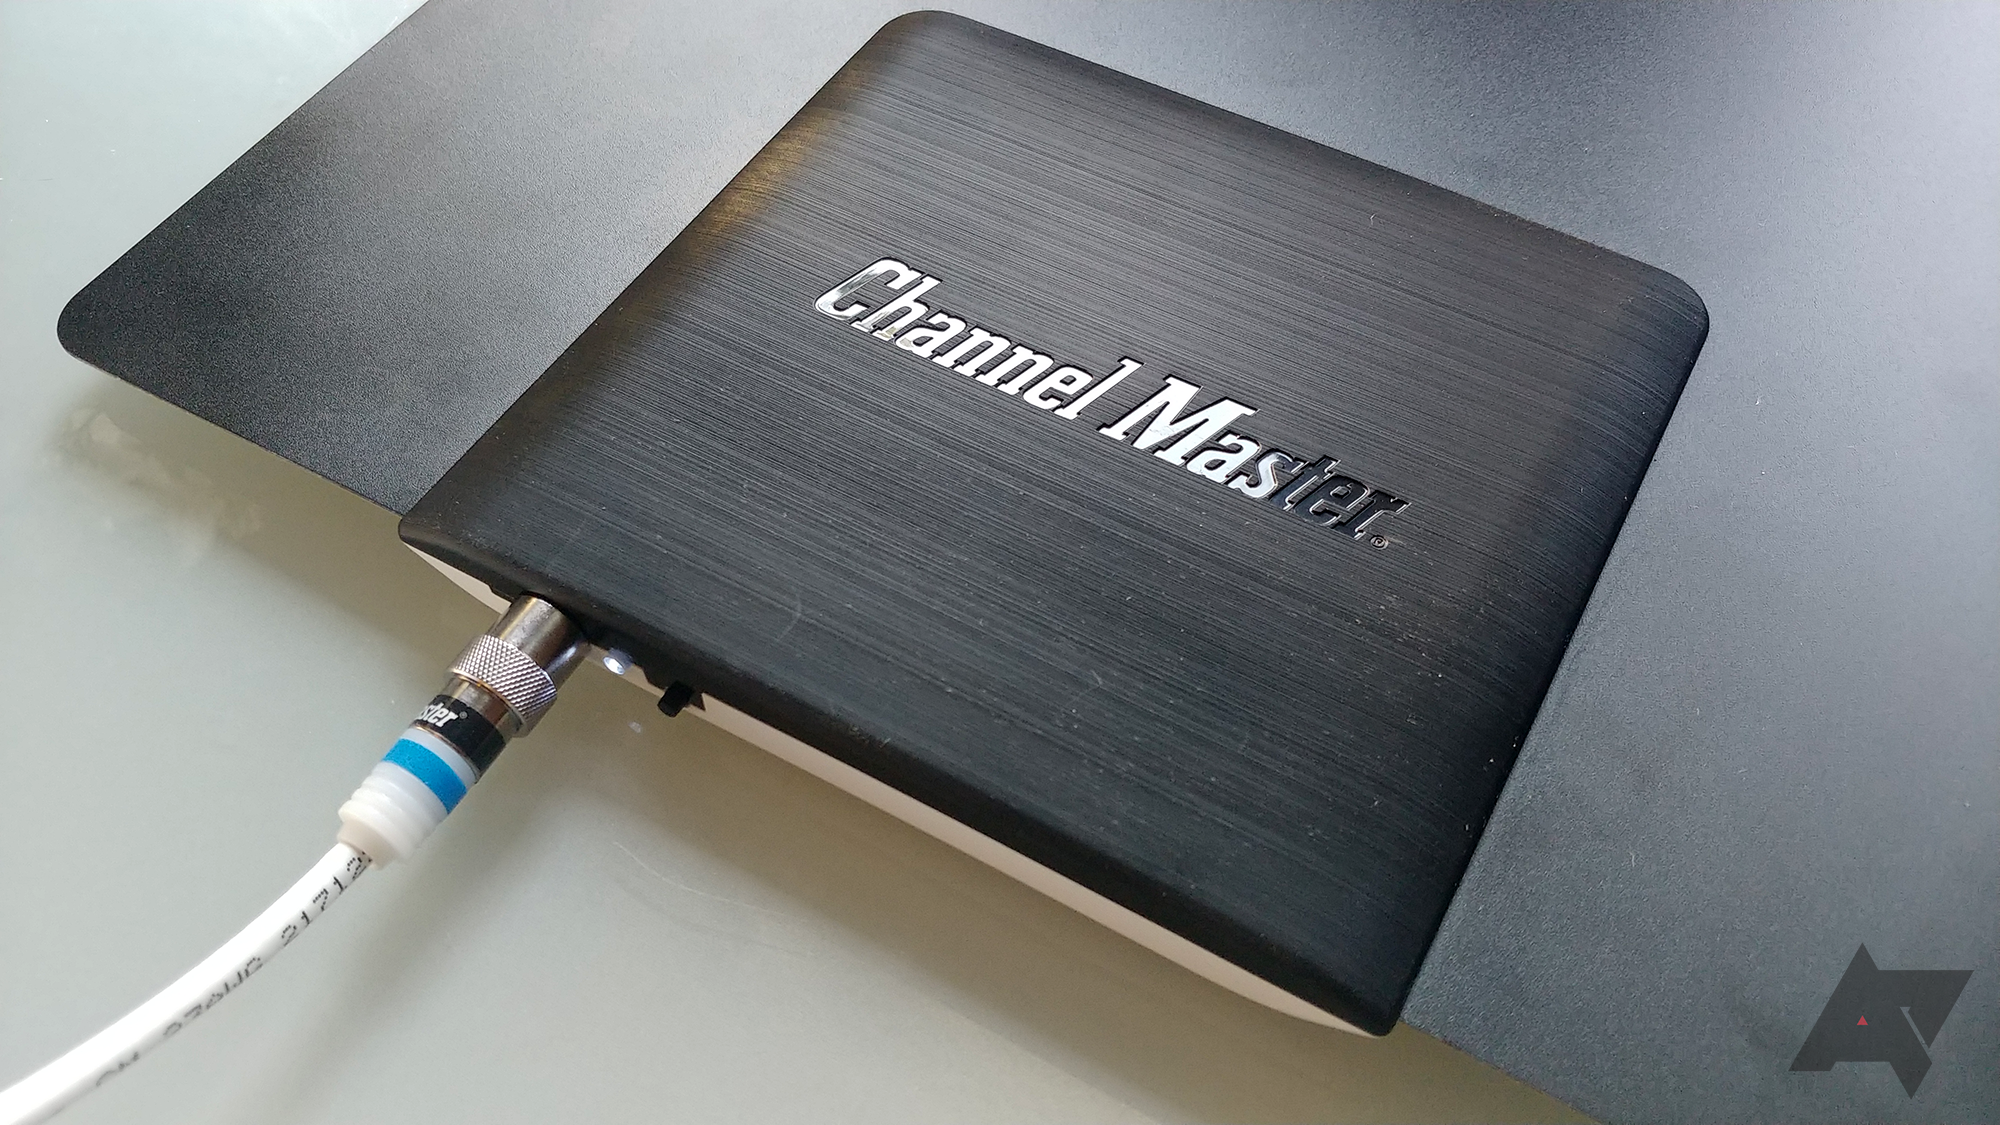 Channel Master Stream+ Android TV DVR review: So much wasted